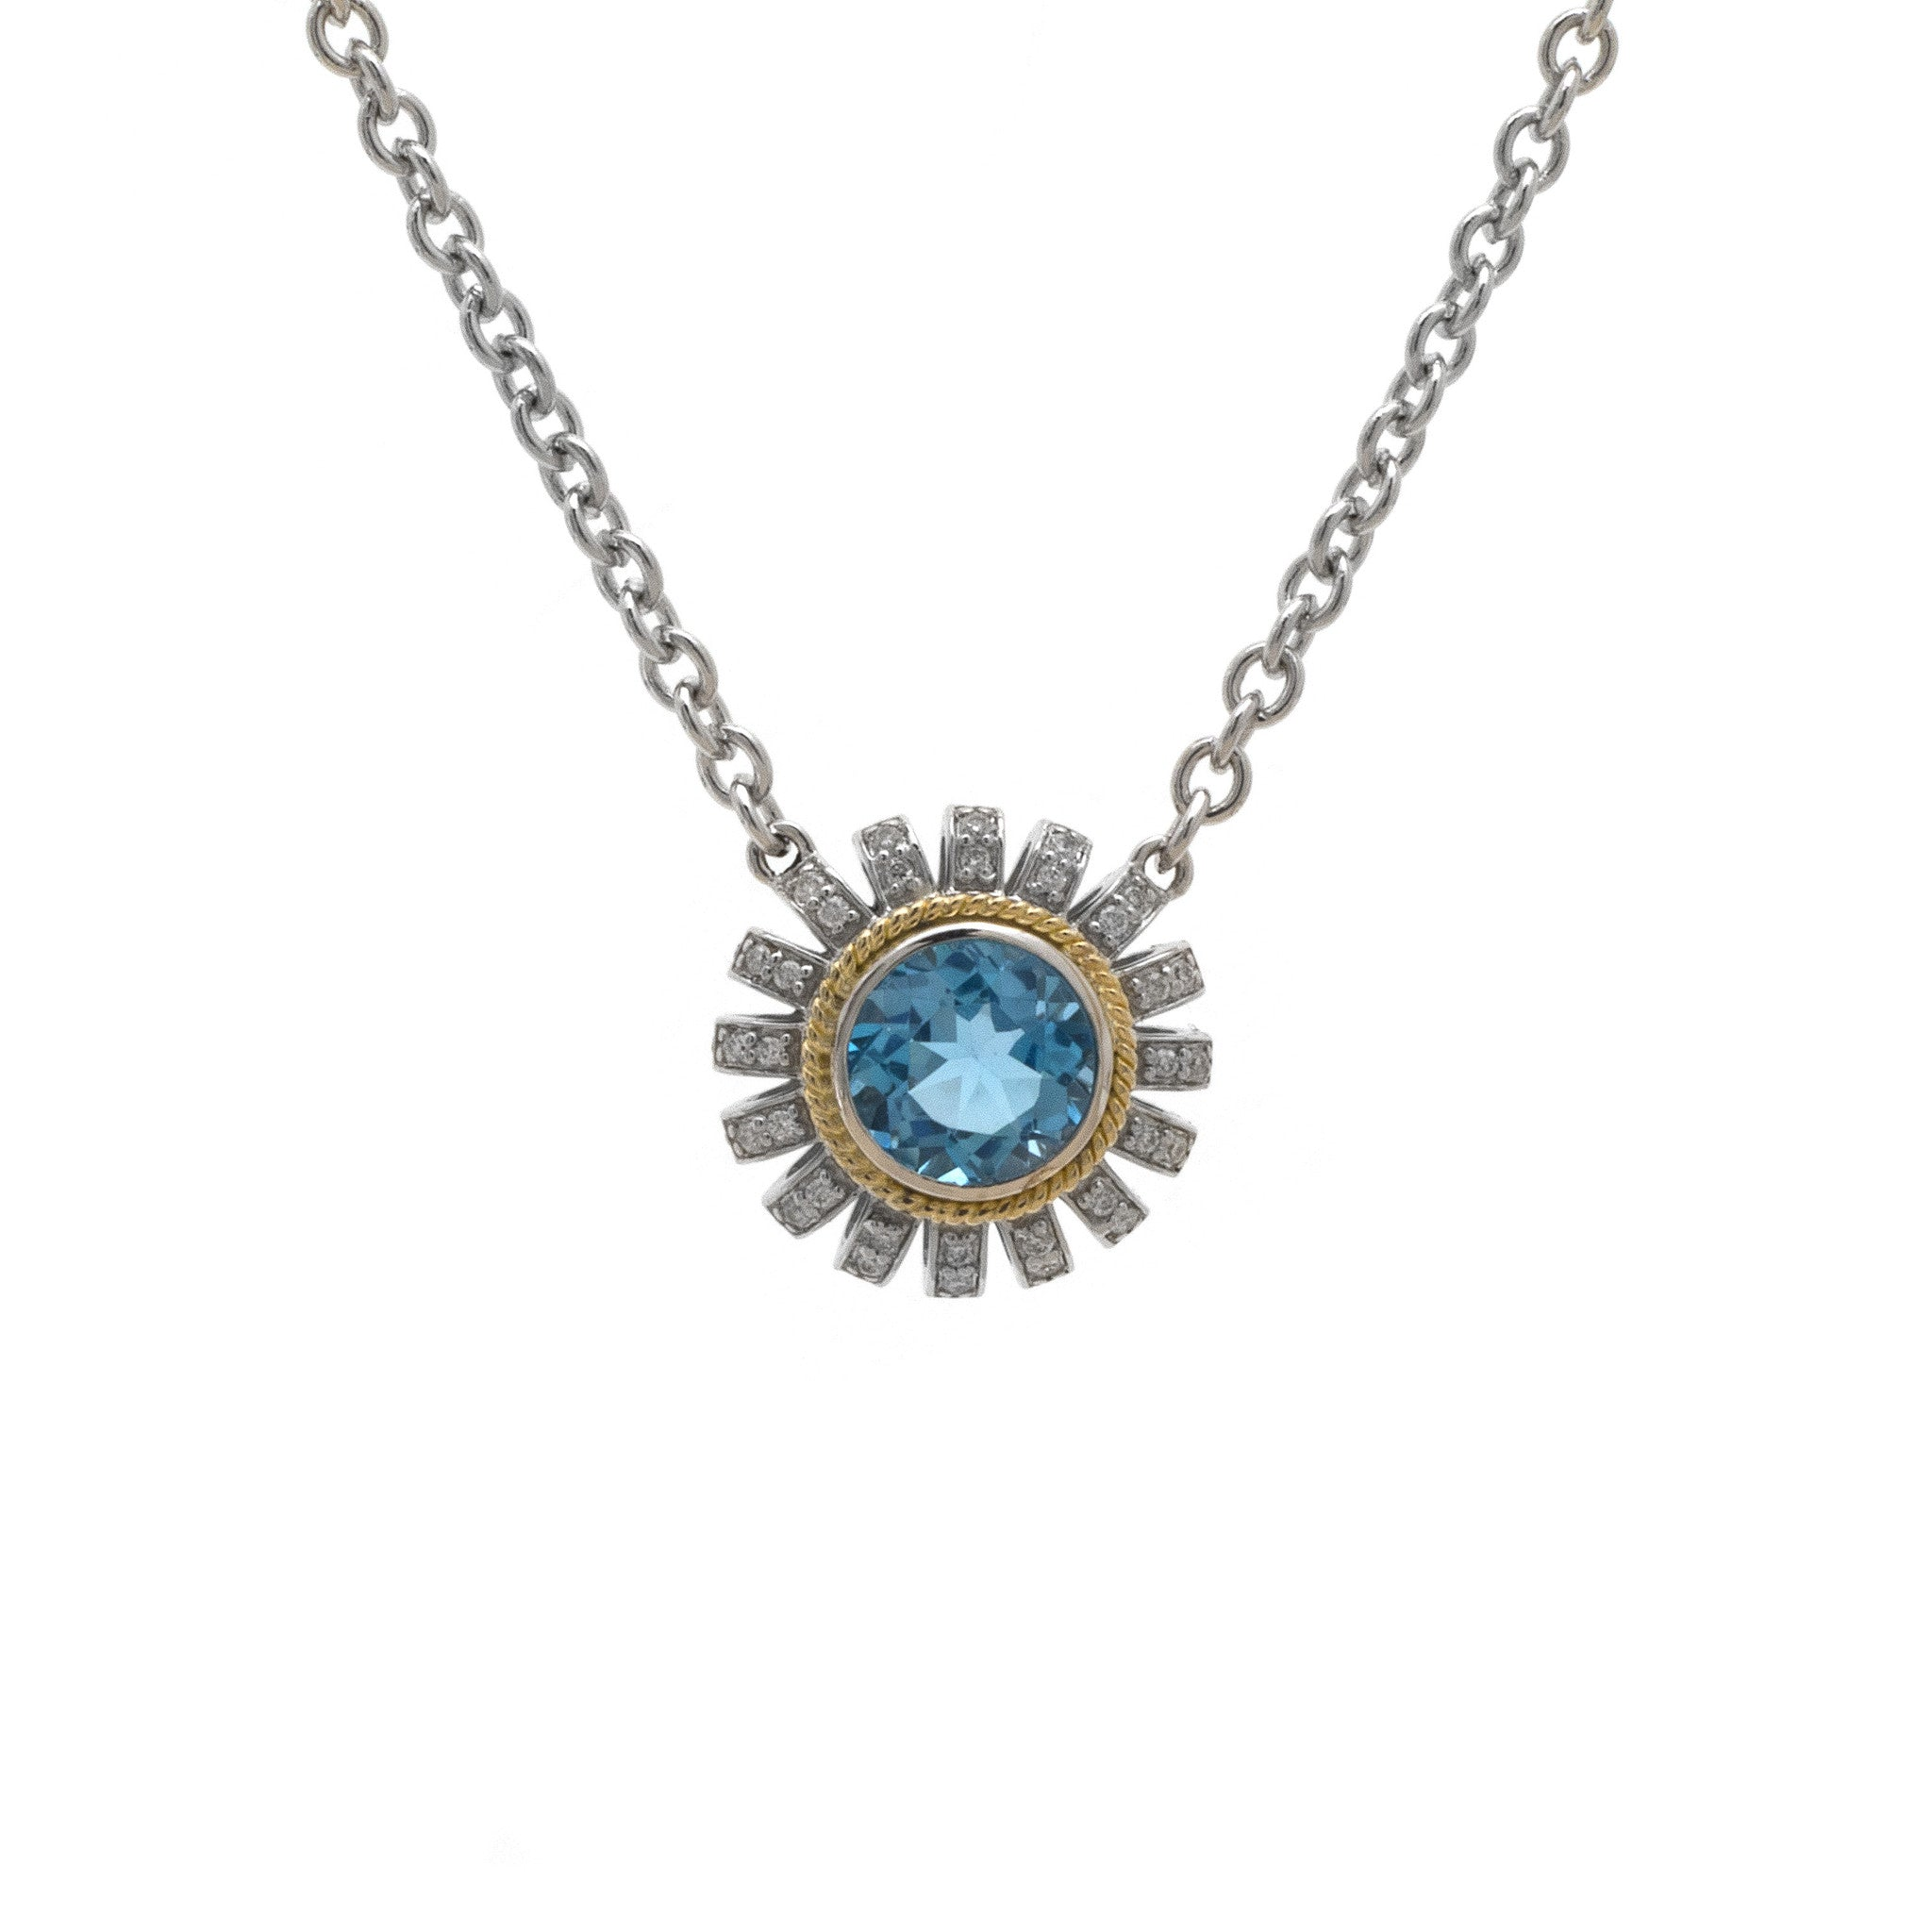 jewellery card necklaces silver birthstone march necklace blue topaz zoom sterling on a pendant gift light simply